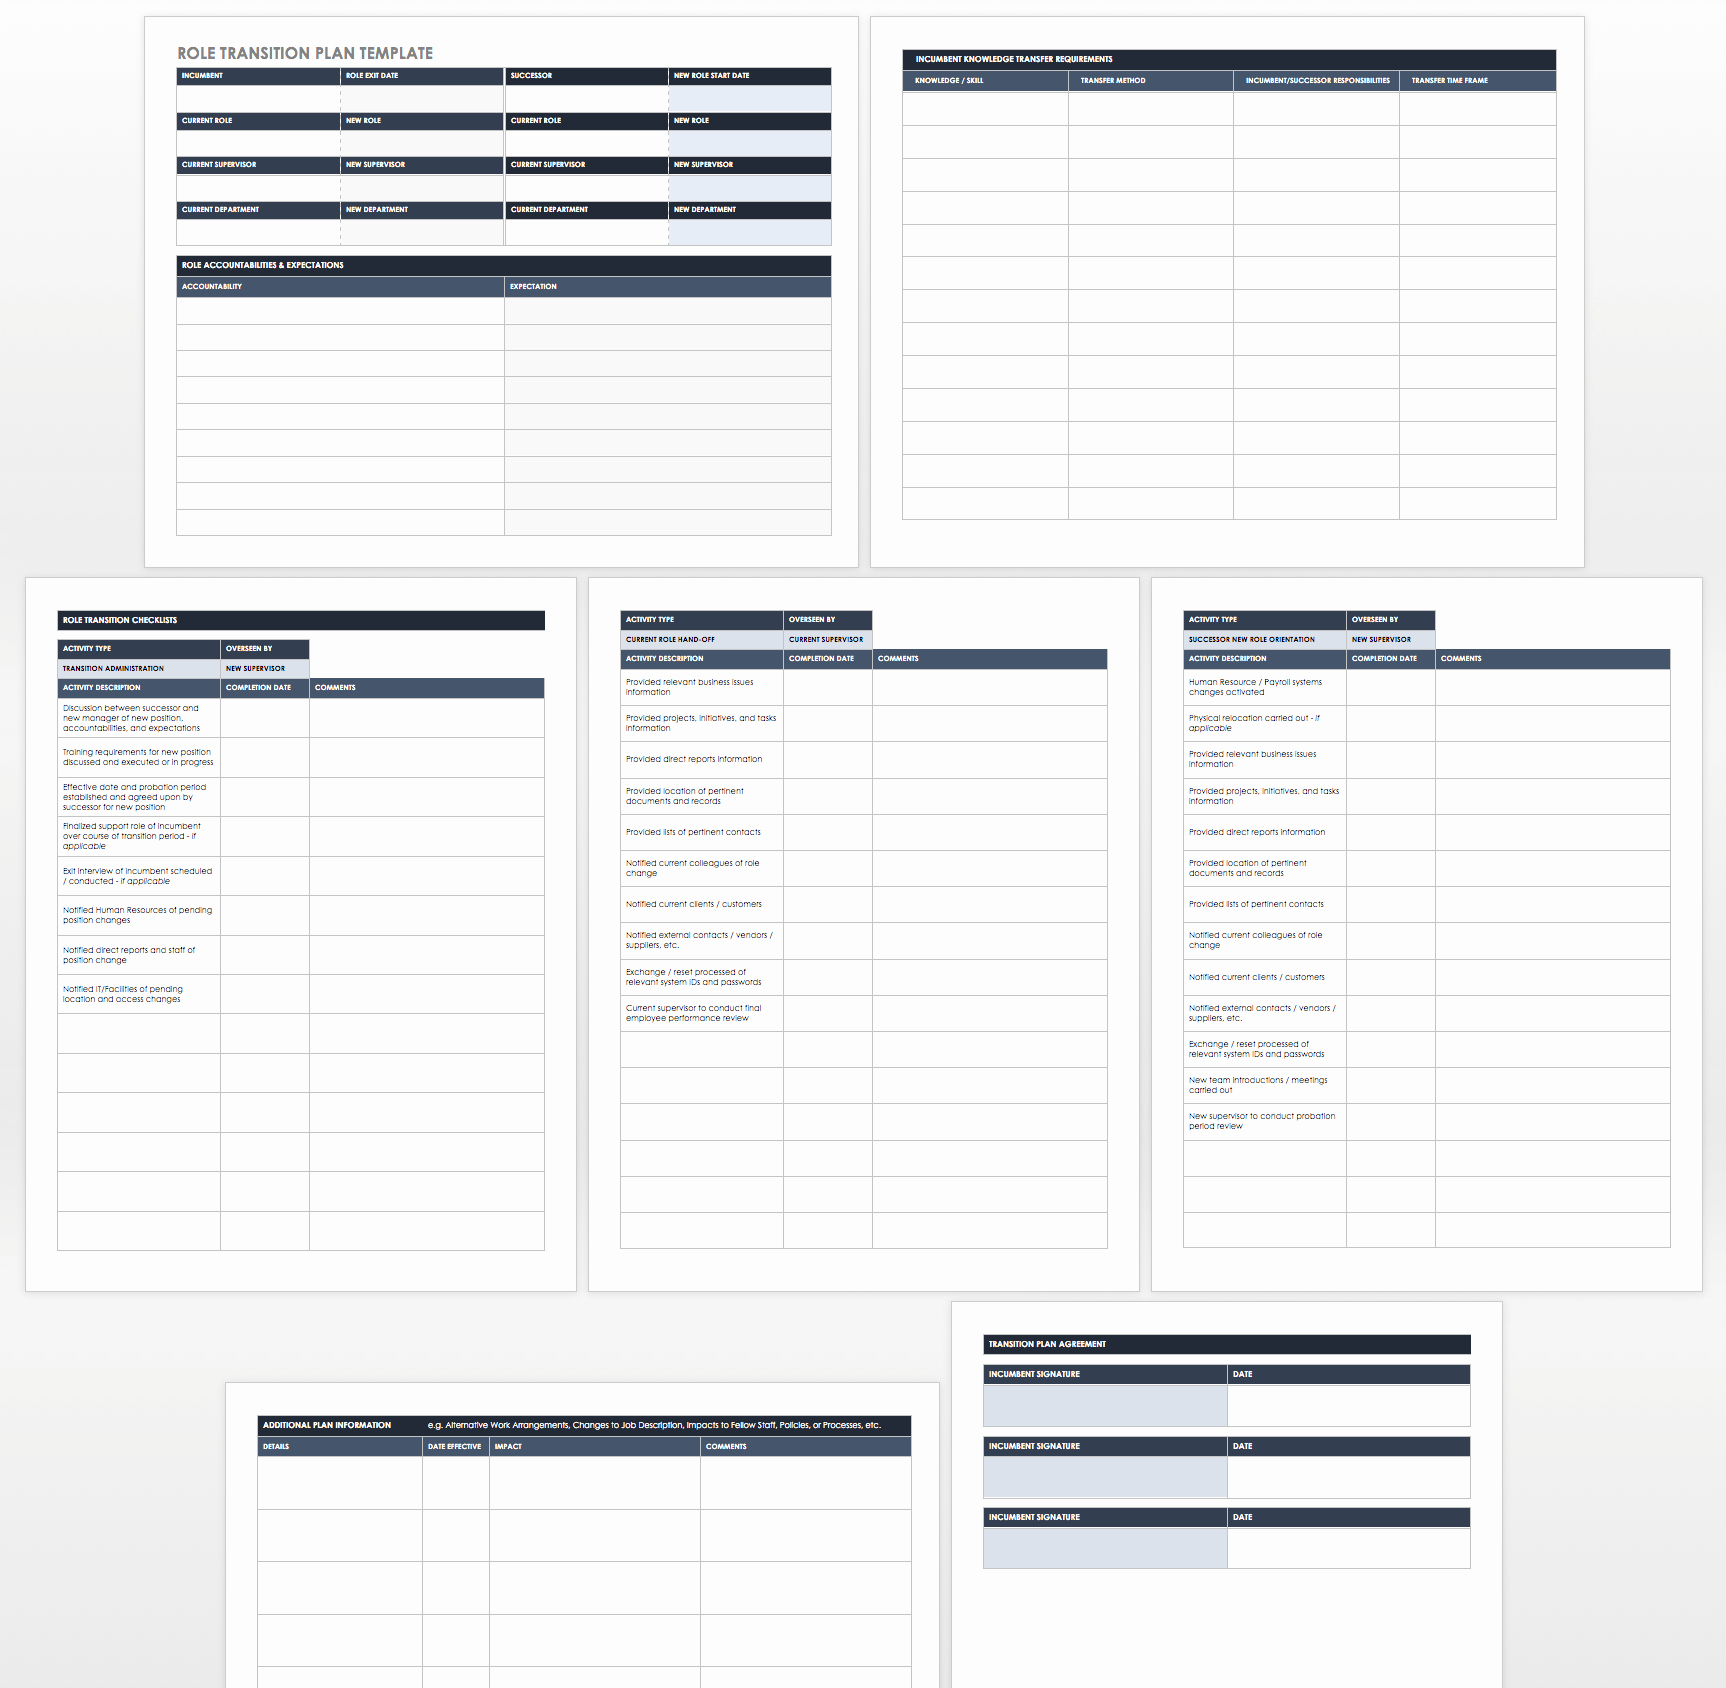 Transition Management Plan Template Lovely Free Business Transition Plan Templates